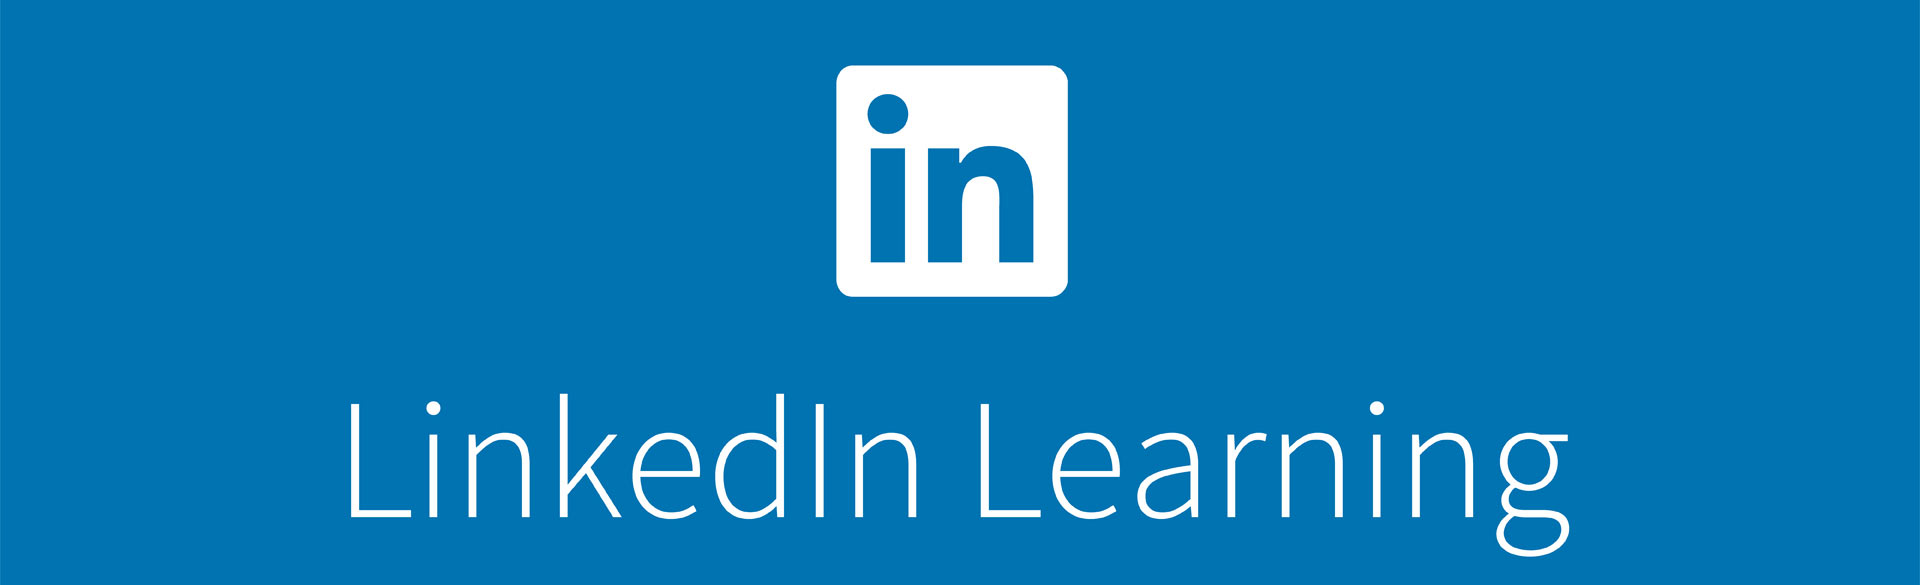 LinkedIn Learning included in the SFM Program